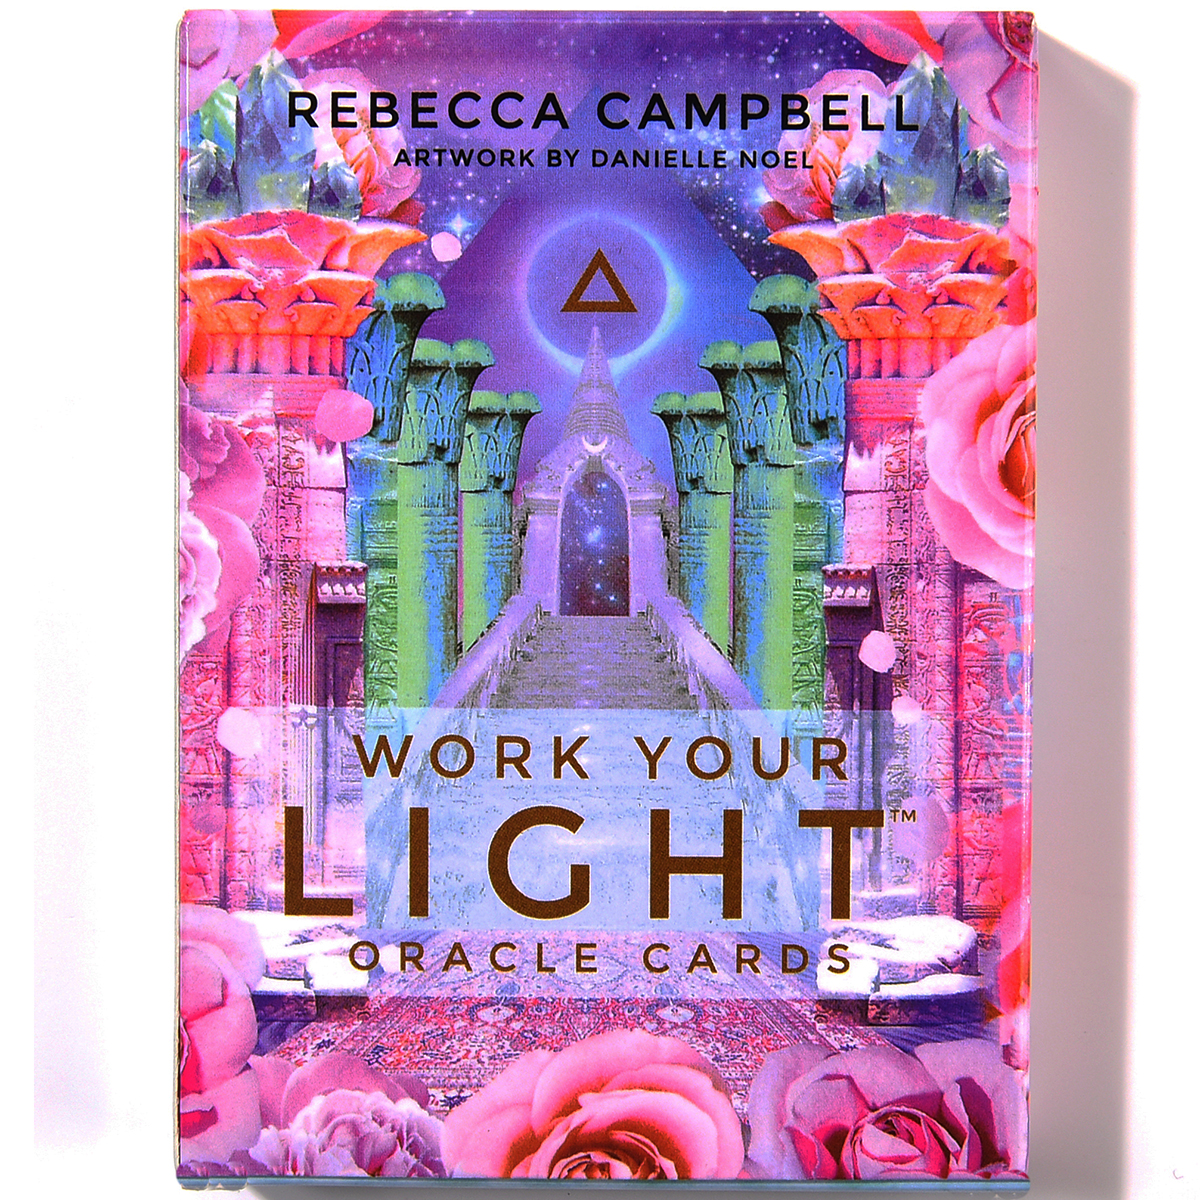 Work Your Light Oracle Cards 44 Beautiful Cards Oracle Deck Game Guidance Divination Reconnect With Your Soul